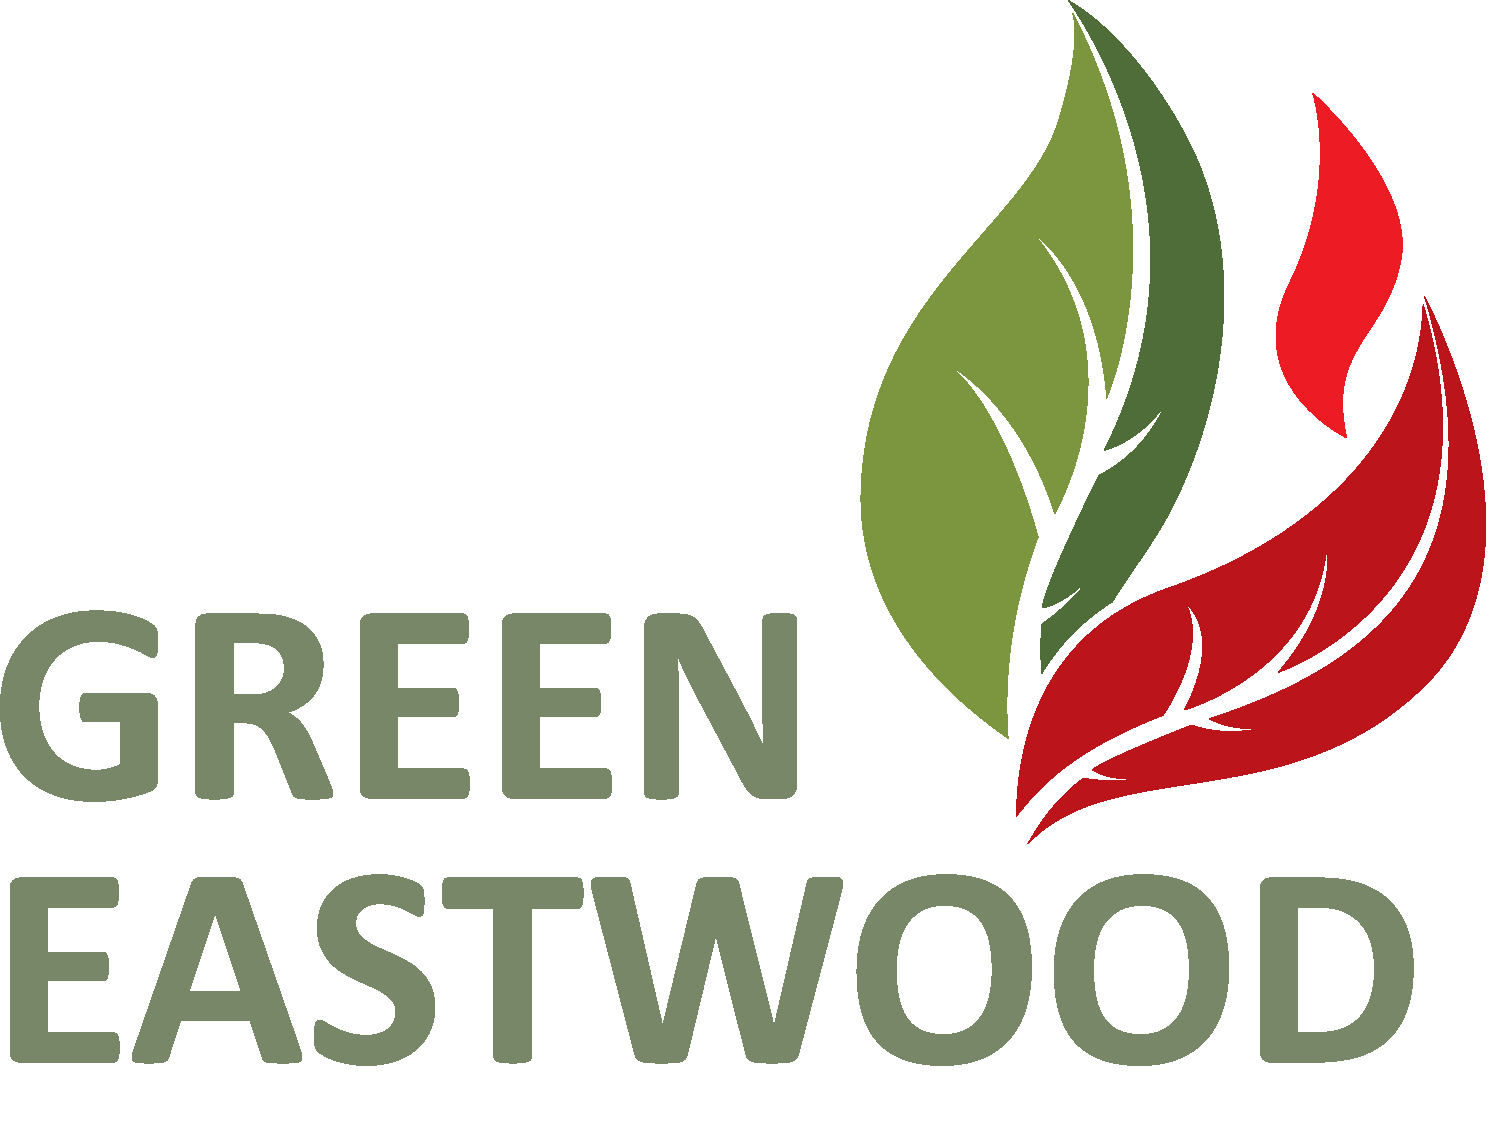 Green Eastwood Sdn Bhd